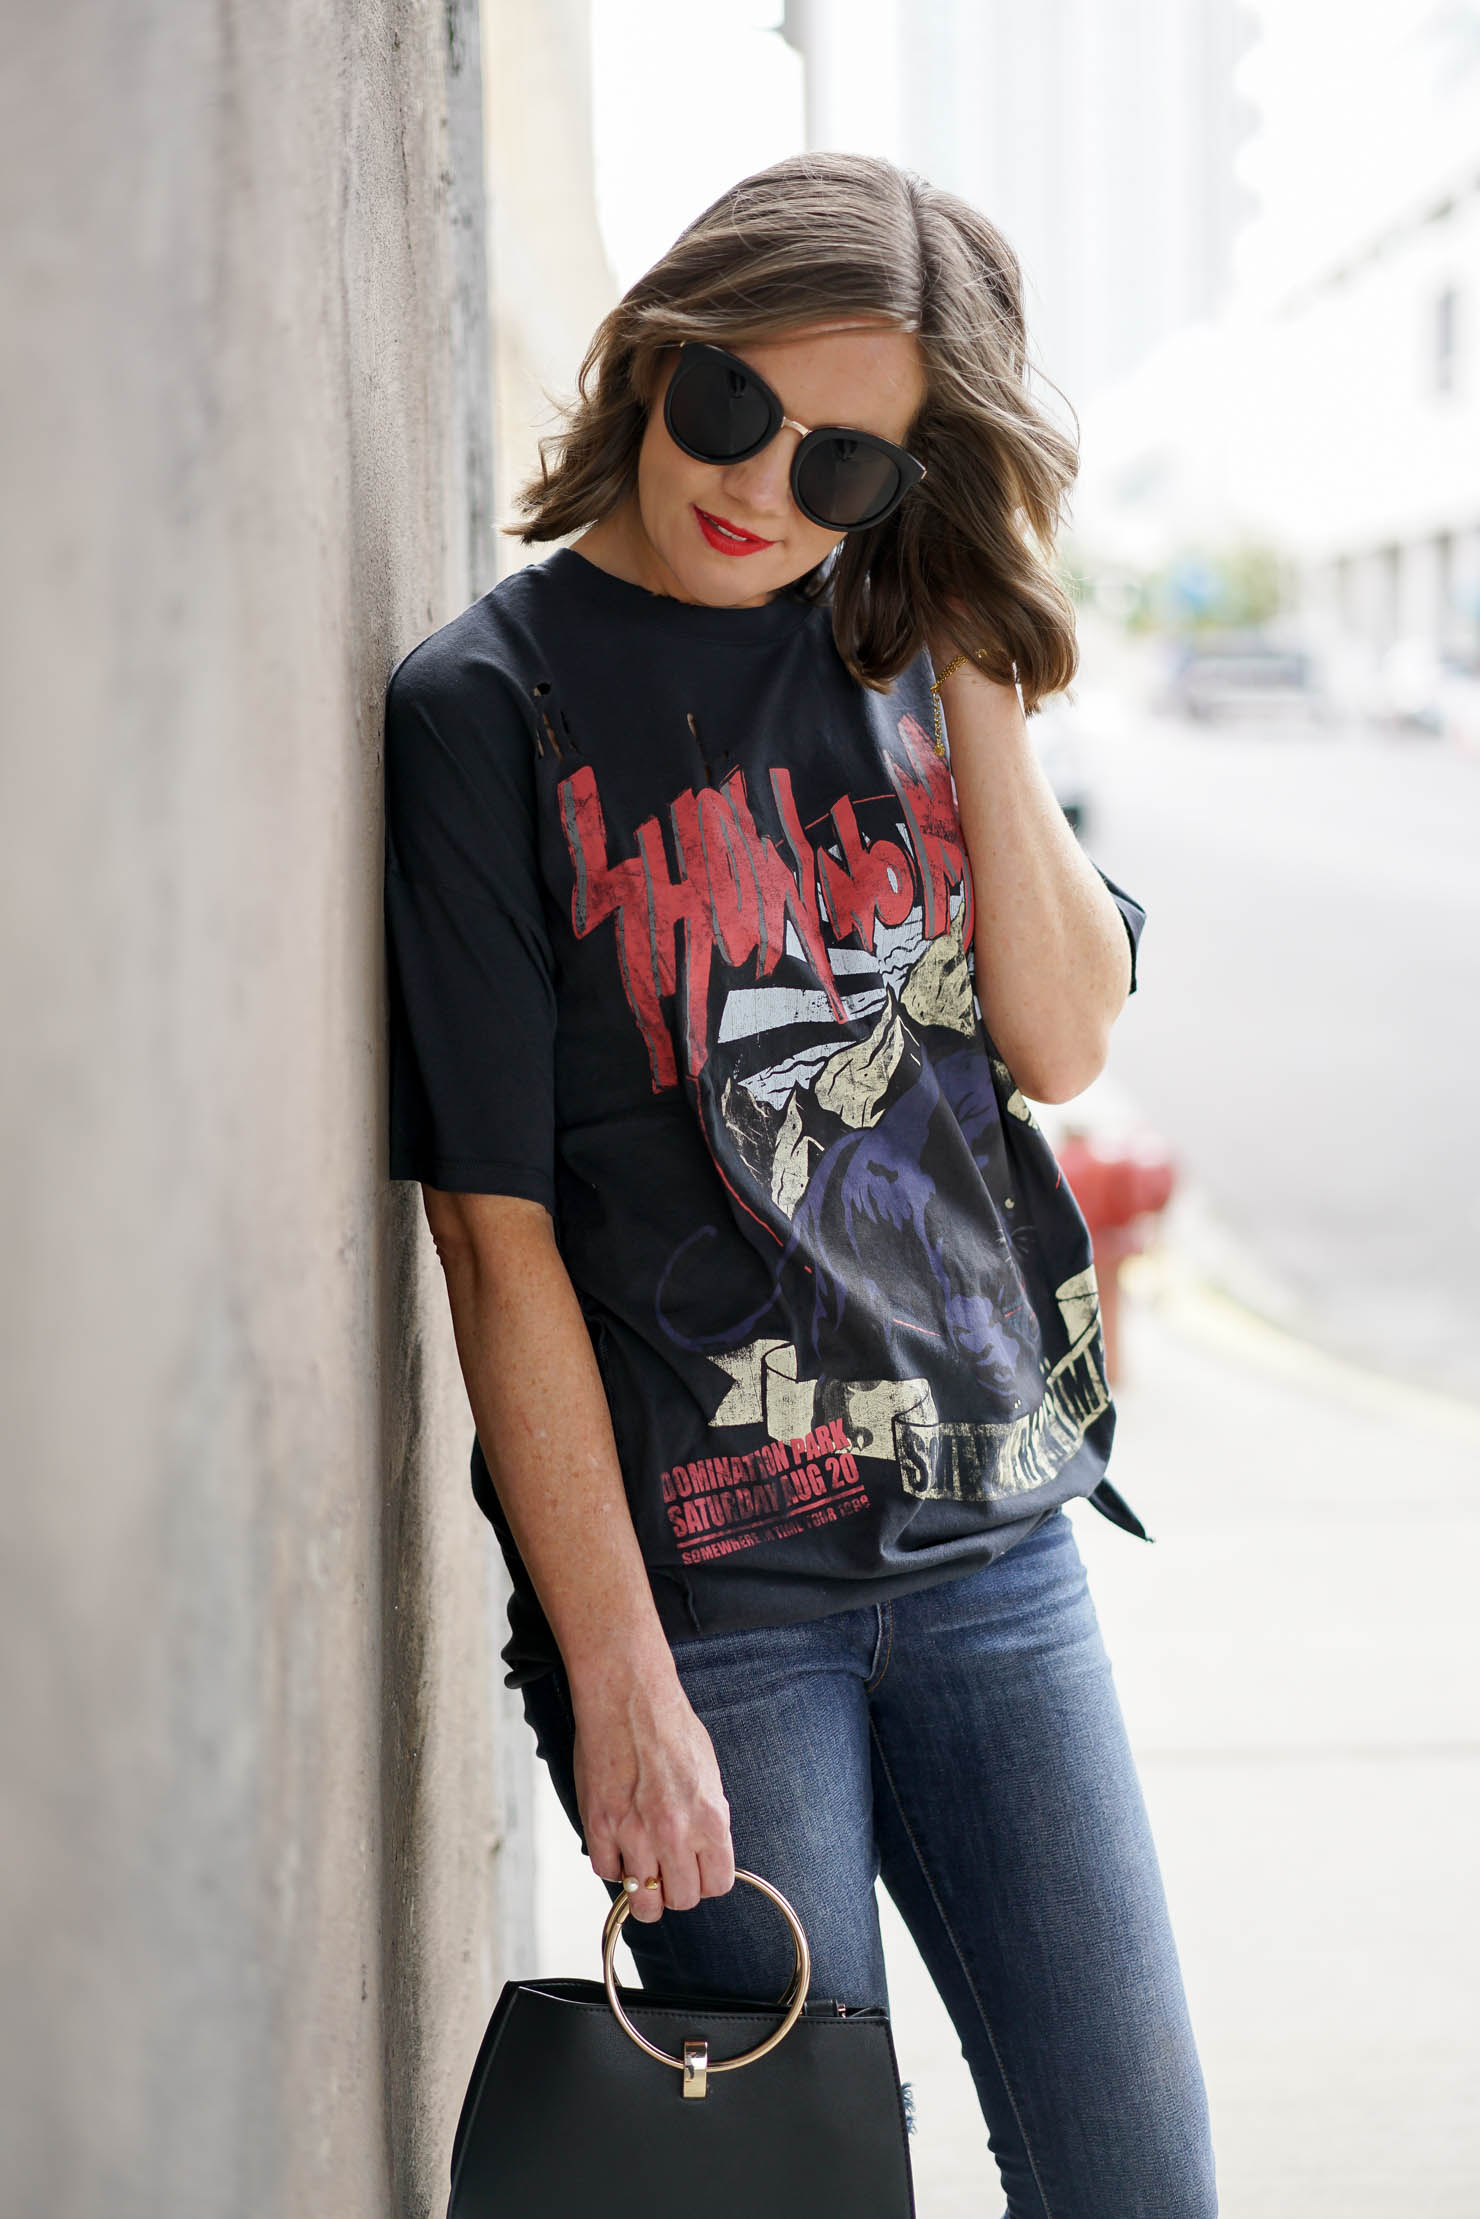 Mom Style: Styling the Graphic Tee Shirt